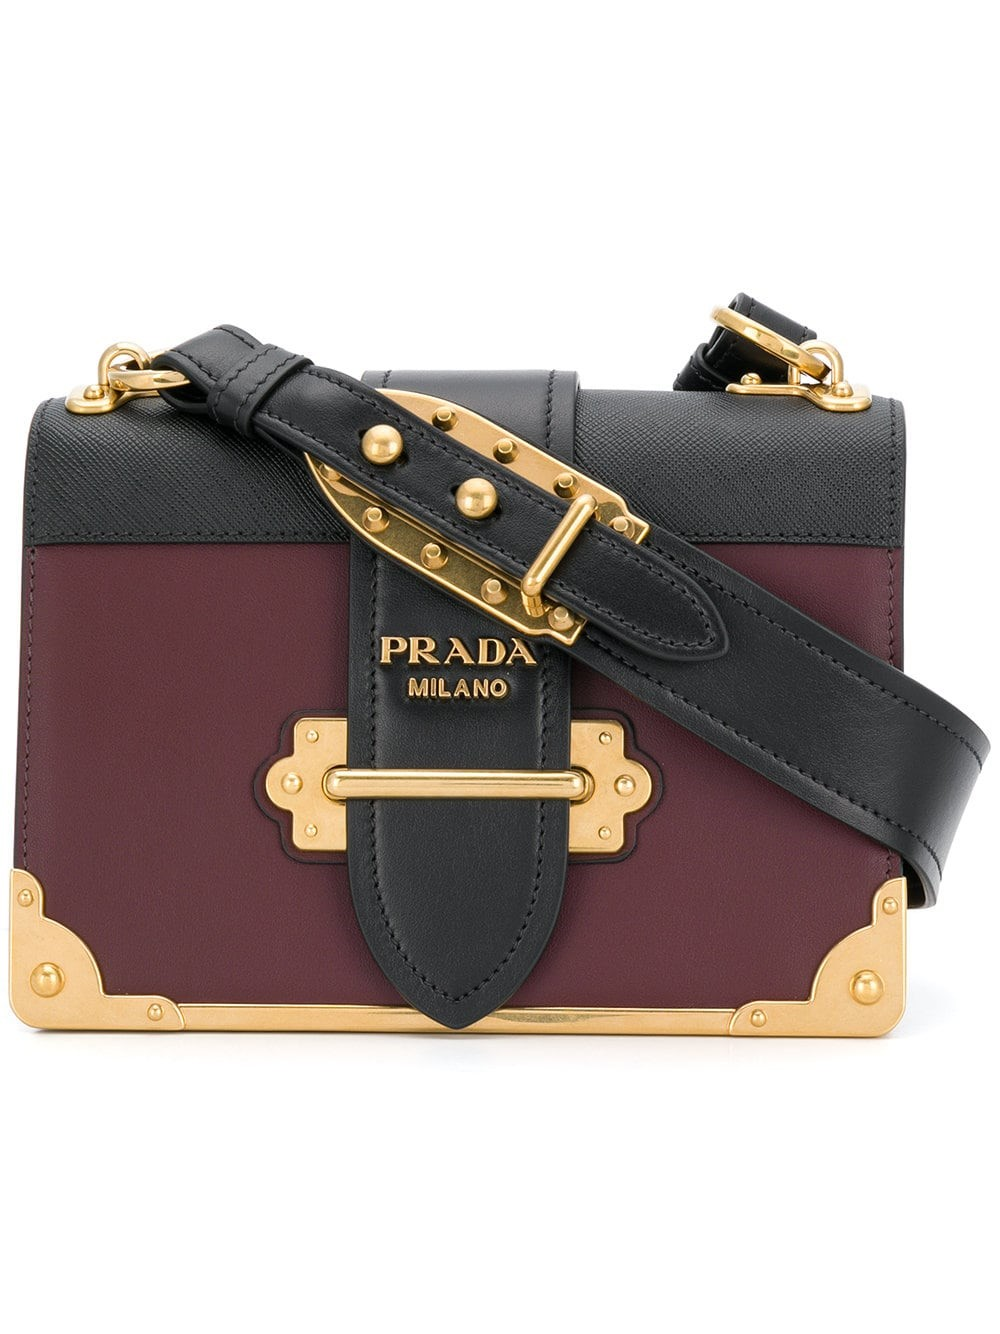 1533af409ab381 prada CAHIER BAG available on montiboutique.com - 24183